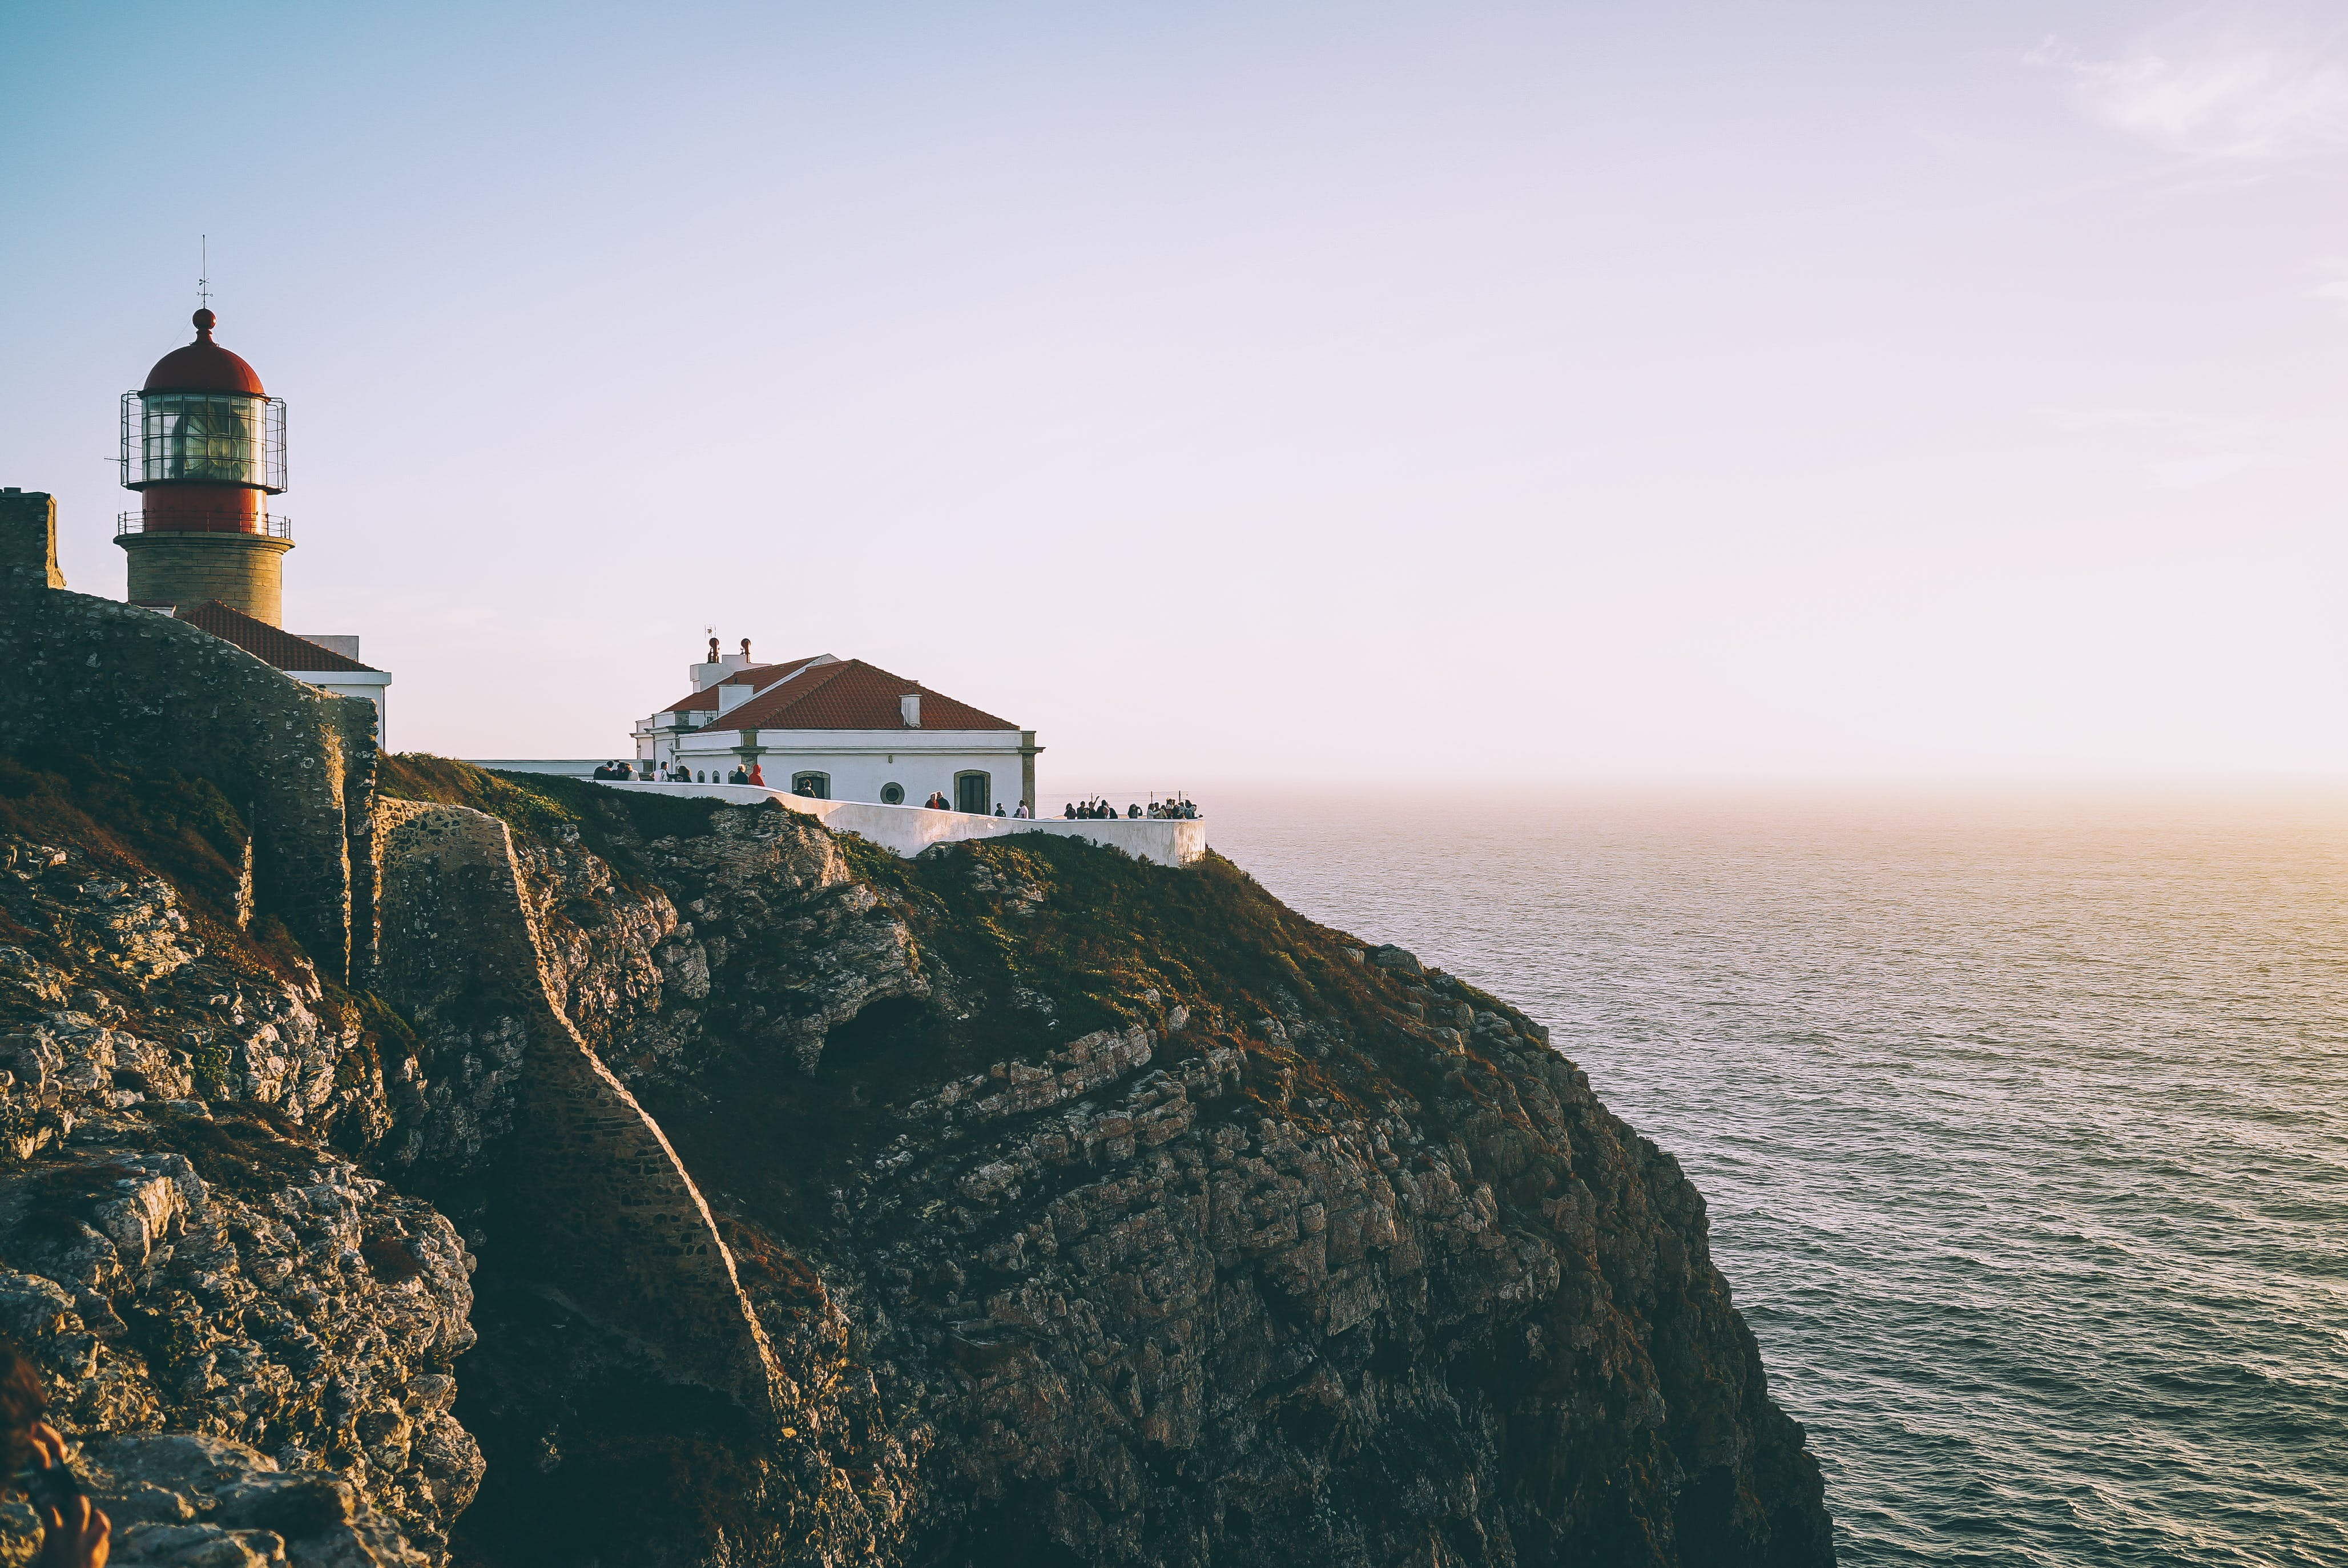 Lighthouse on Cliff Beside Body of Water